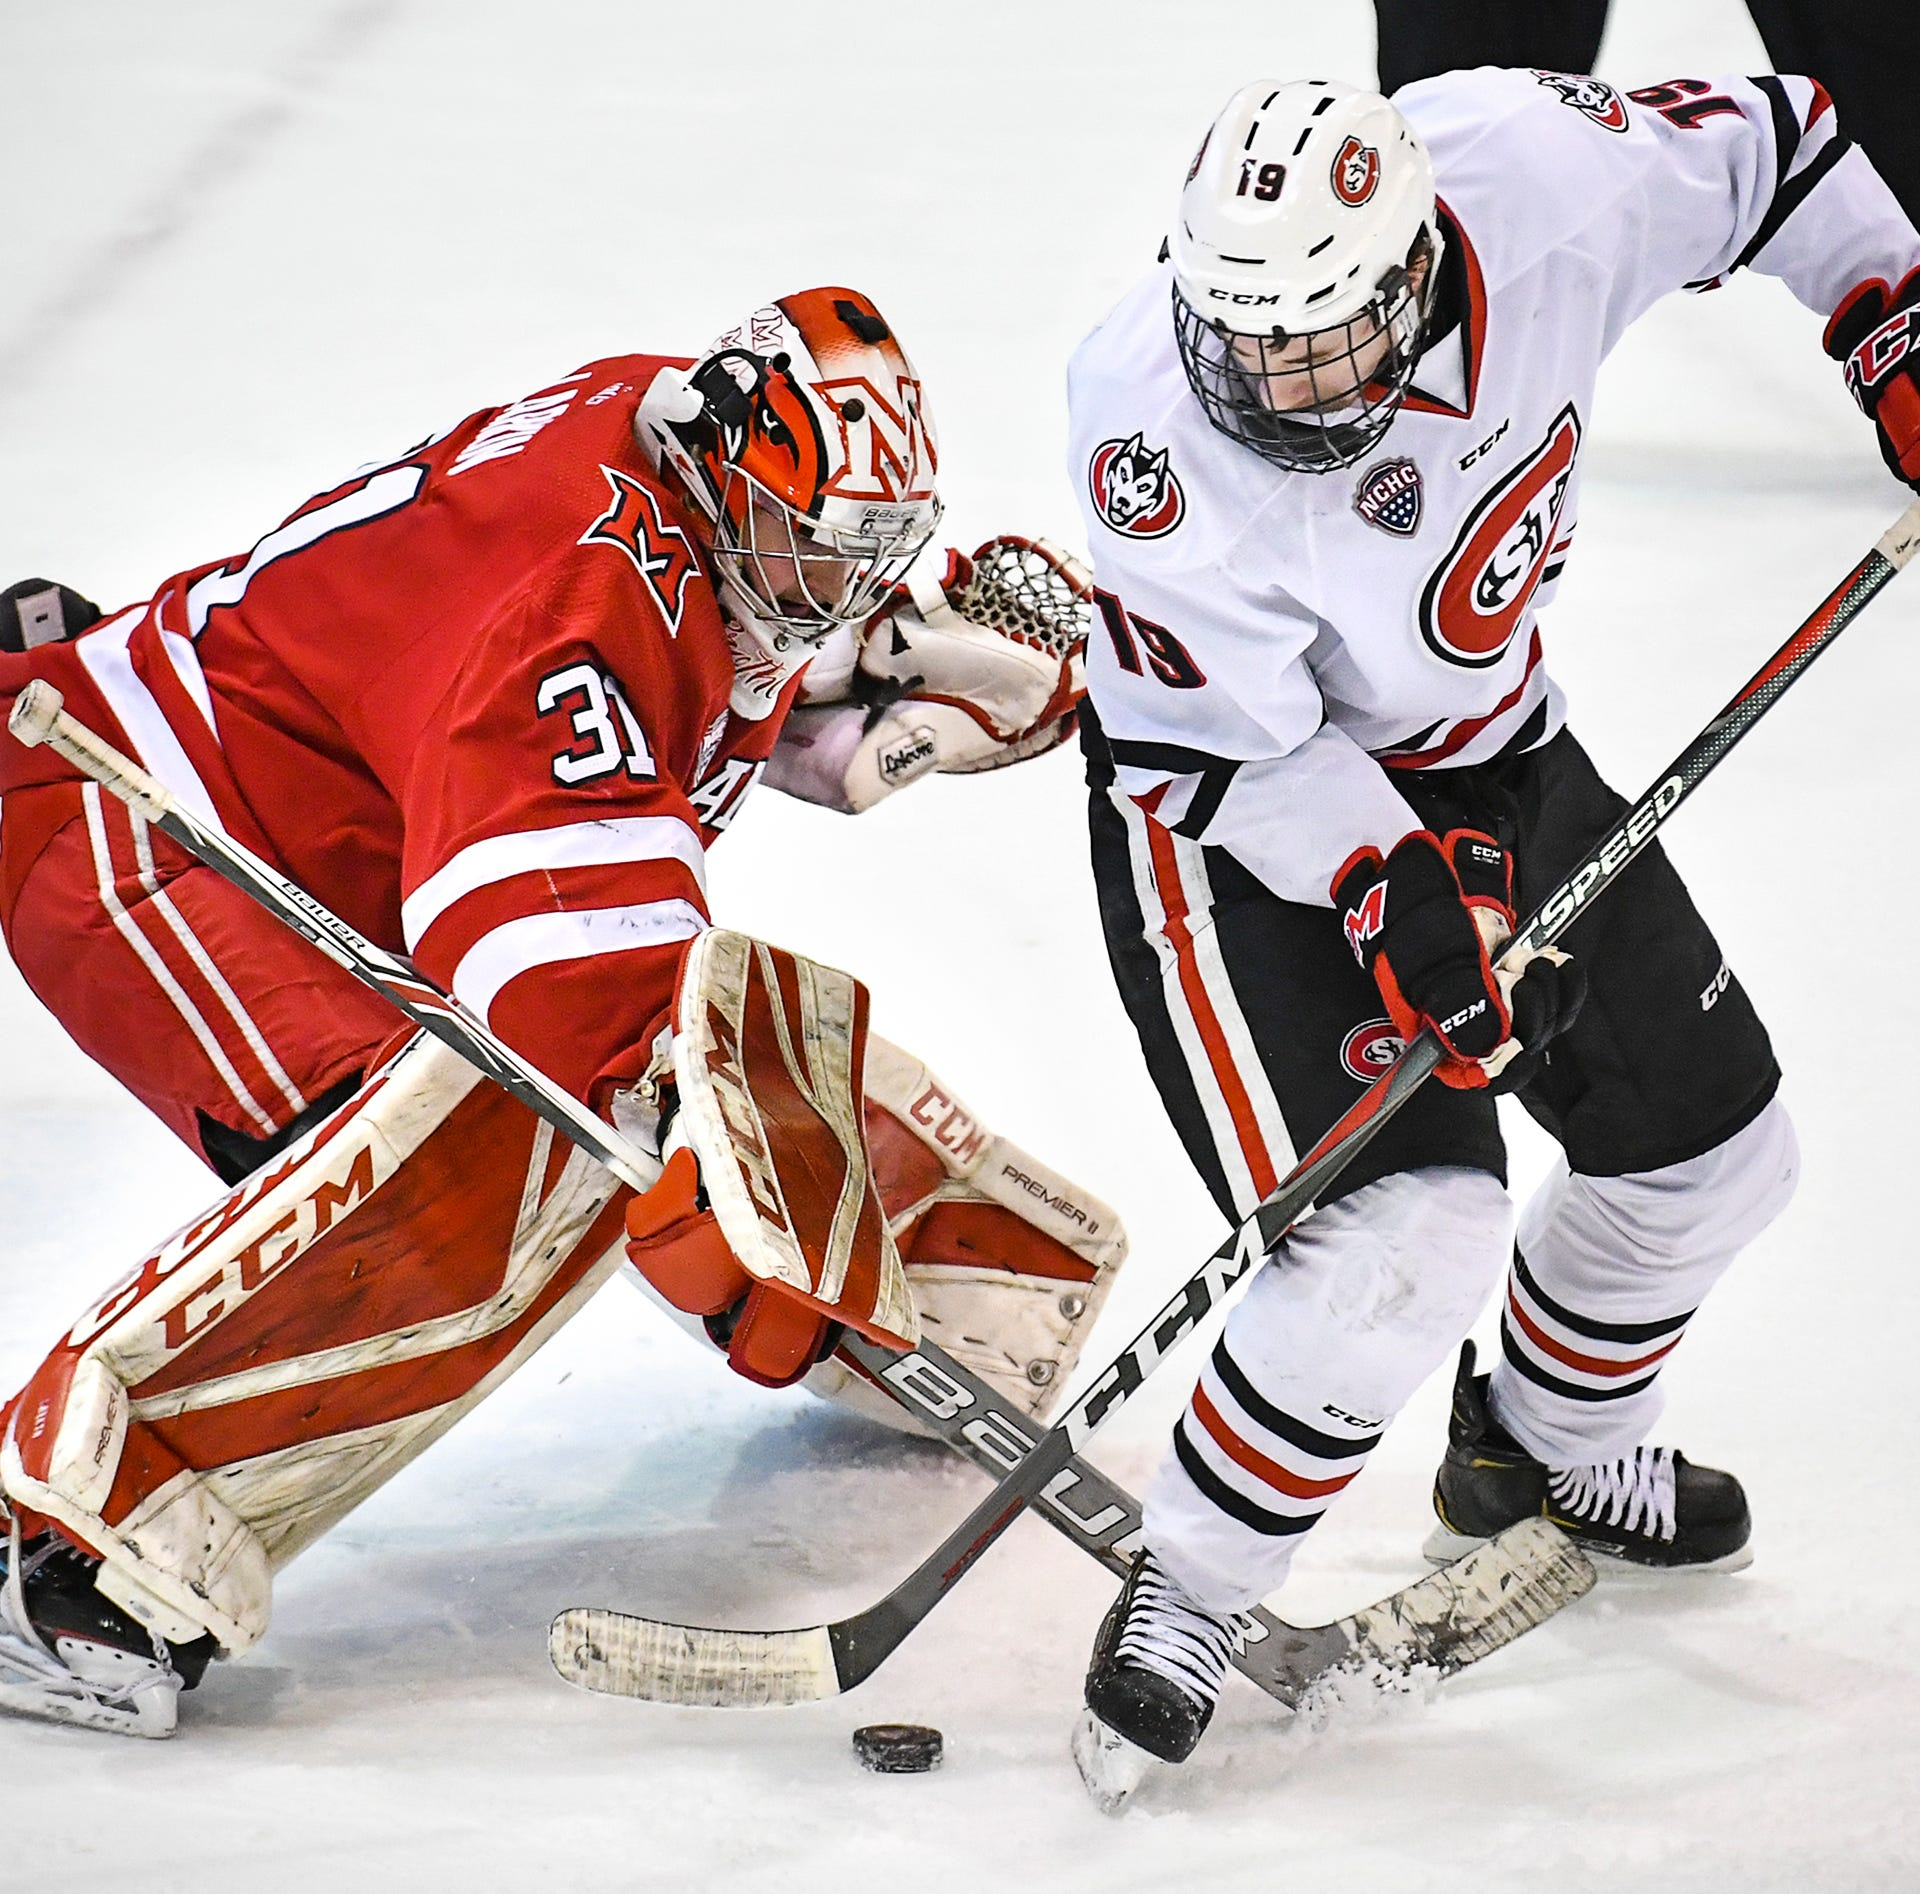 St. Cloud State's Sam Hentges takes a shot on Miami goaltender Ryan Larkin during the first period of the Saturday, March 16 game at the Herb Brooks National Hockey Center in St. Cloud.